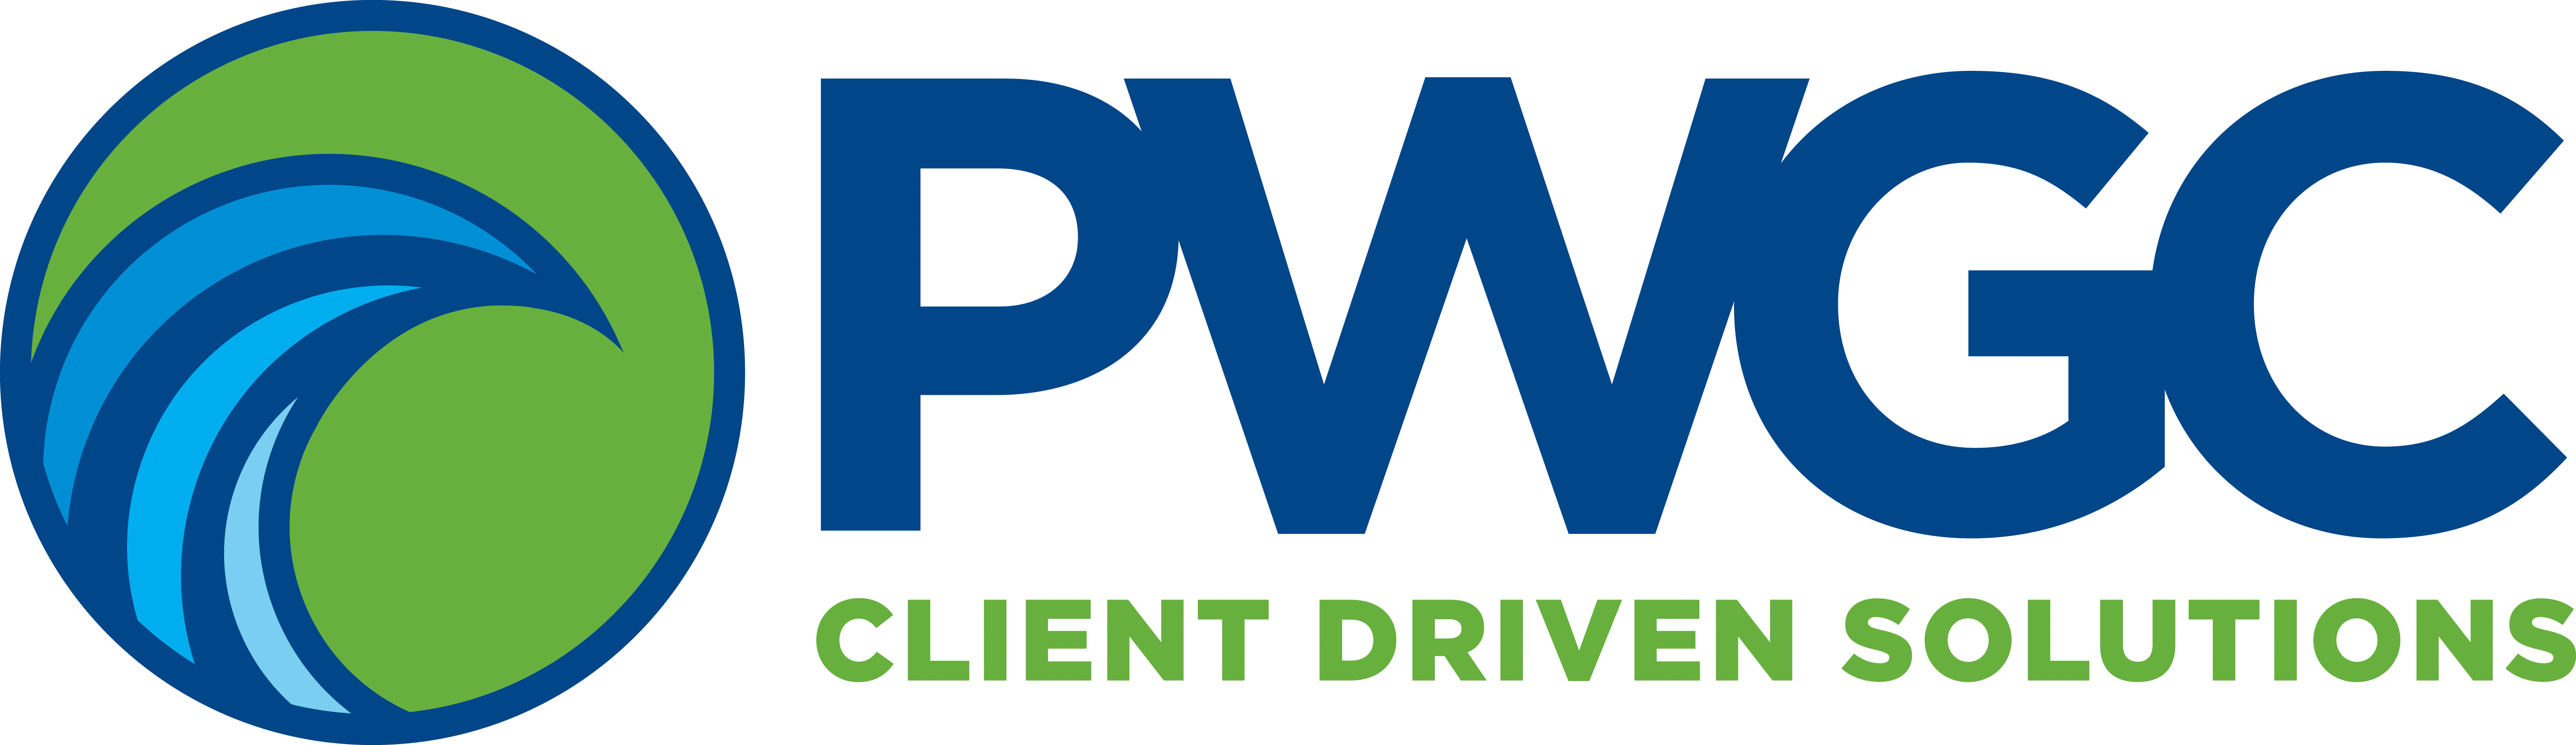 PW Grosser Consulting